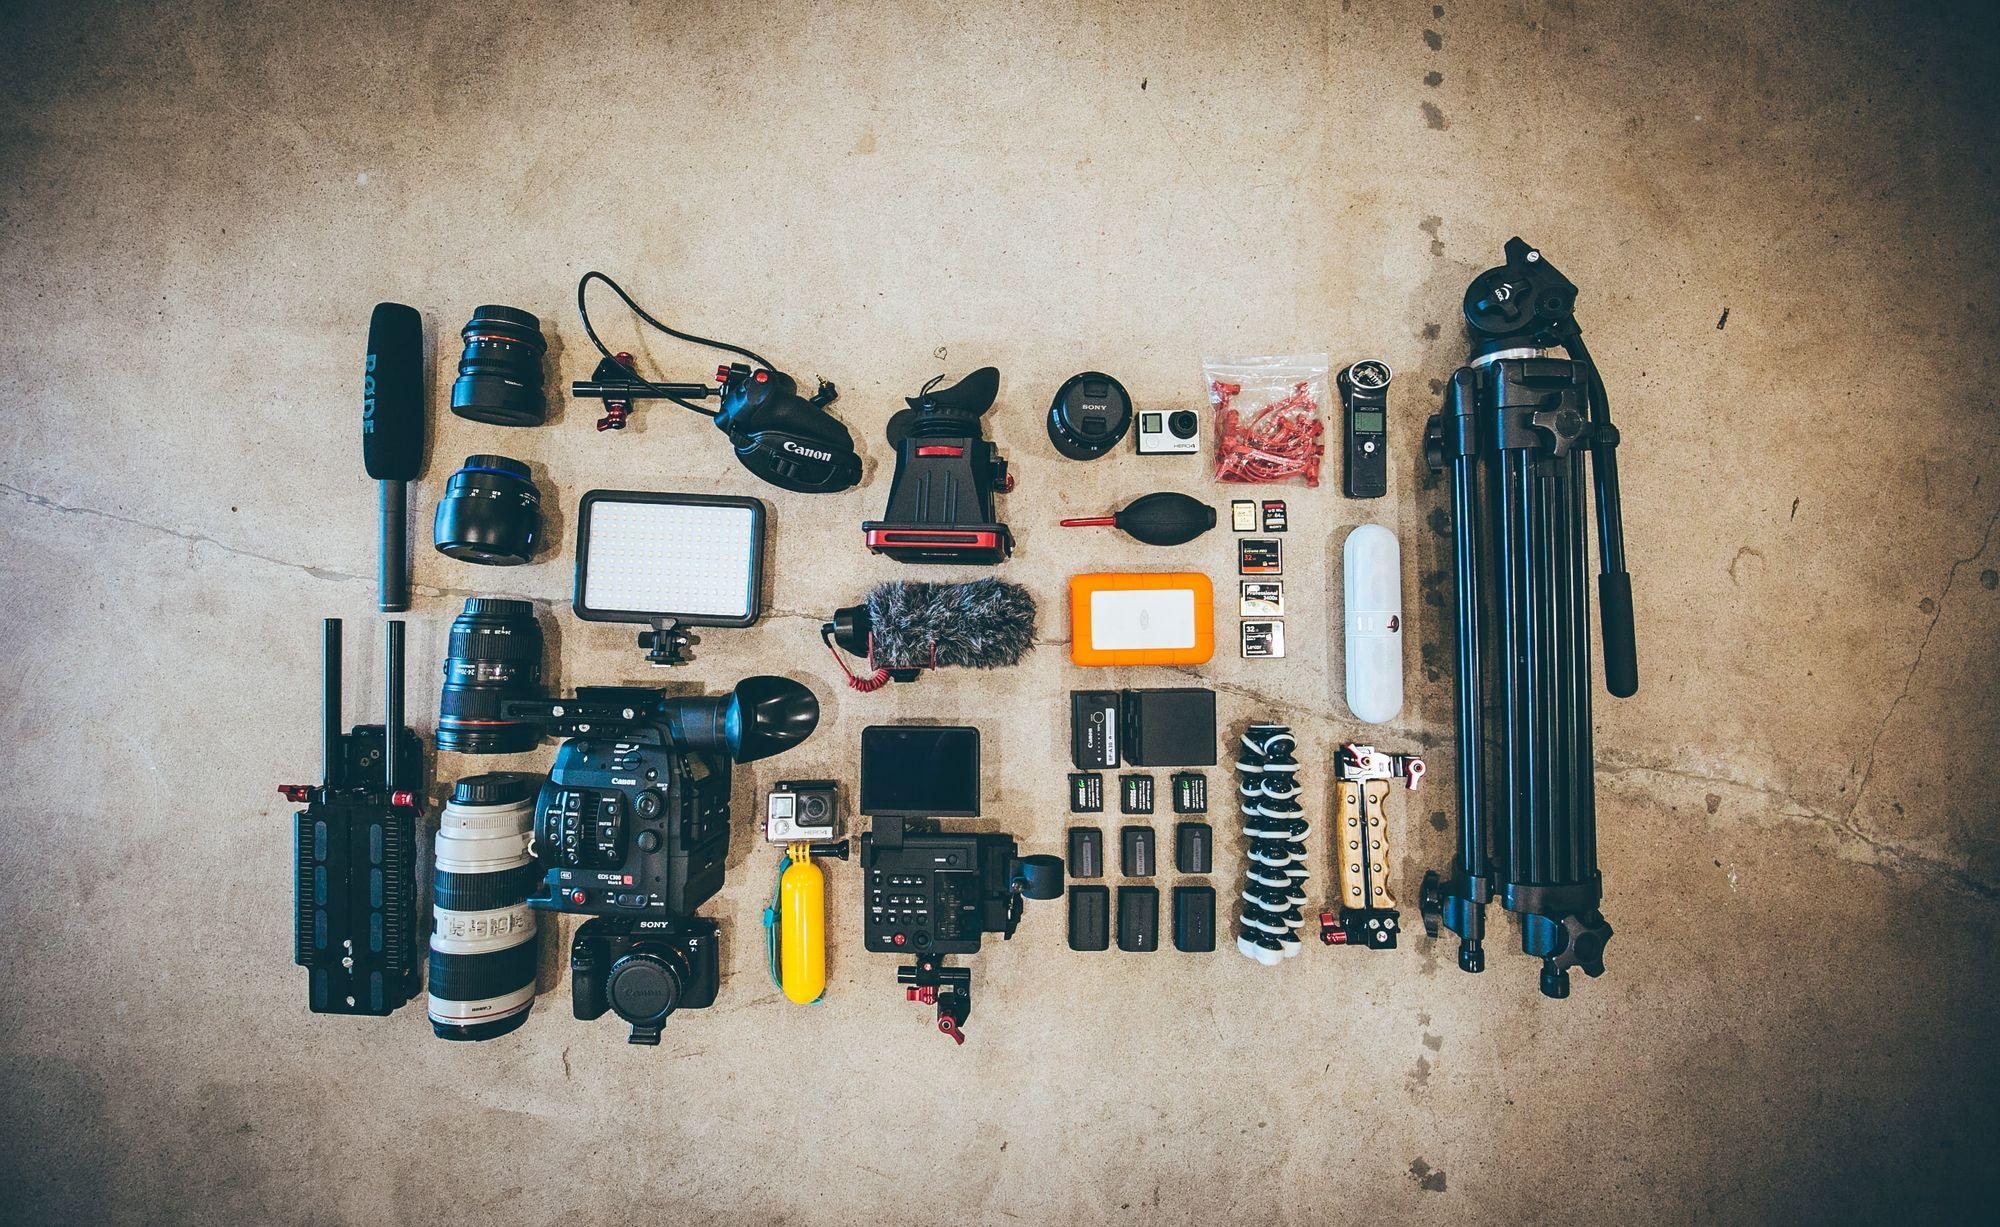 Other good to have camera equipment